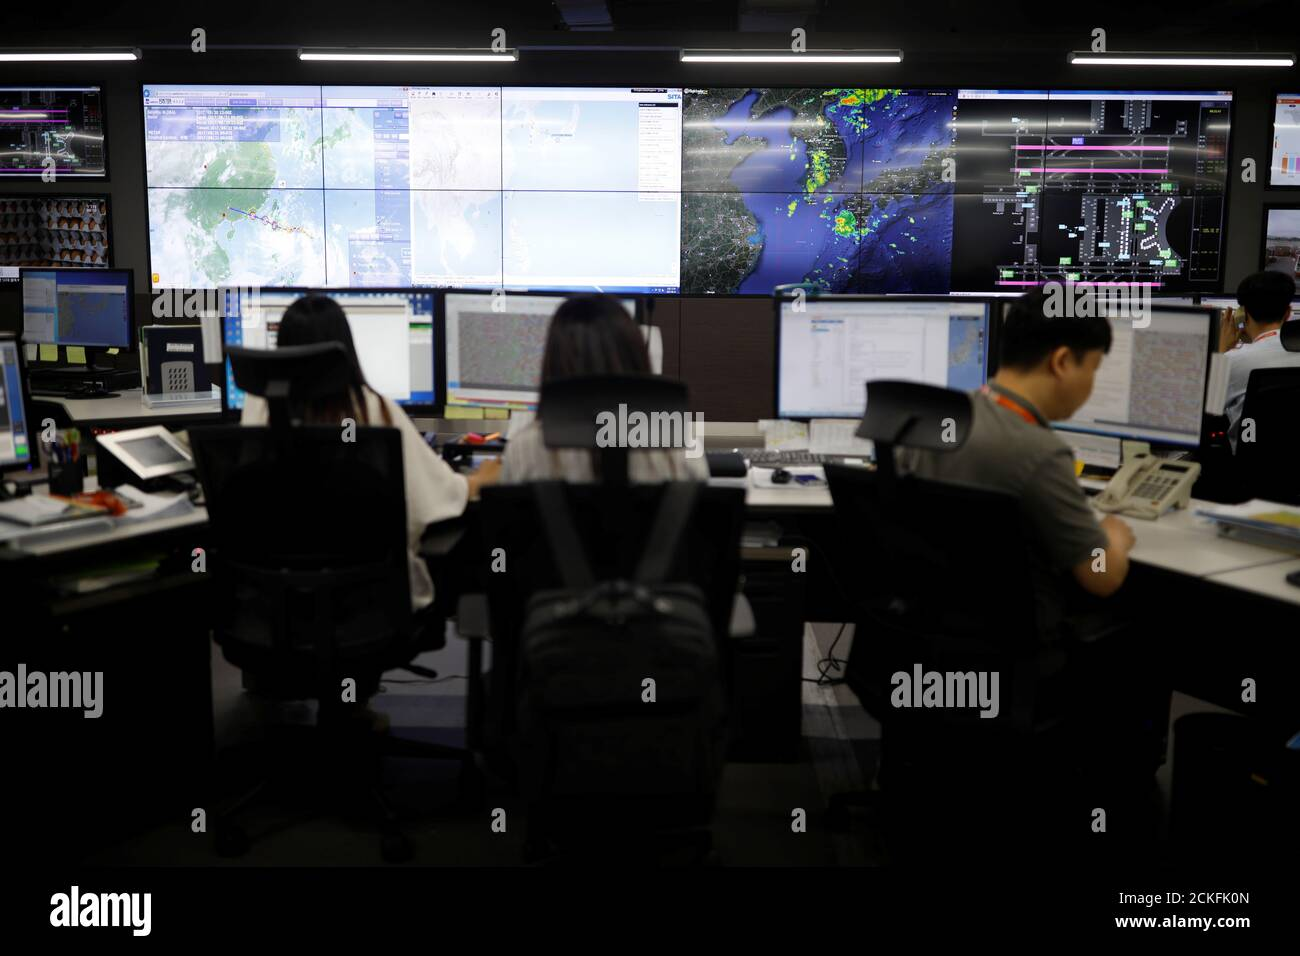 Airport Operations Center High Resolution Stock Photography And Images Alamy